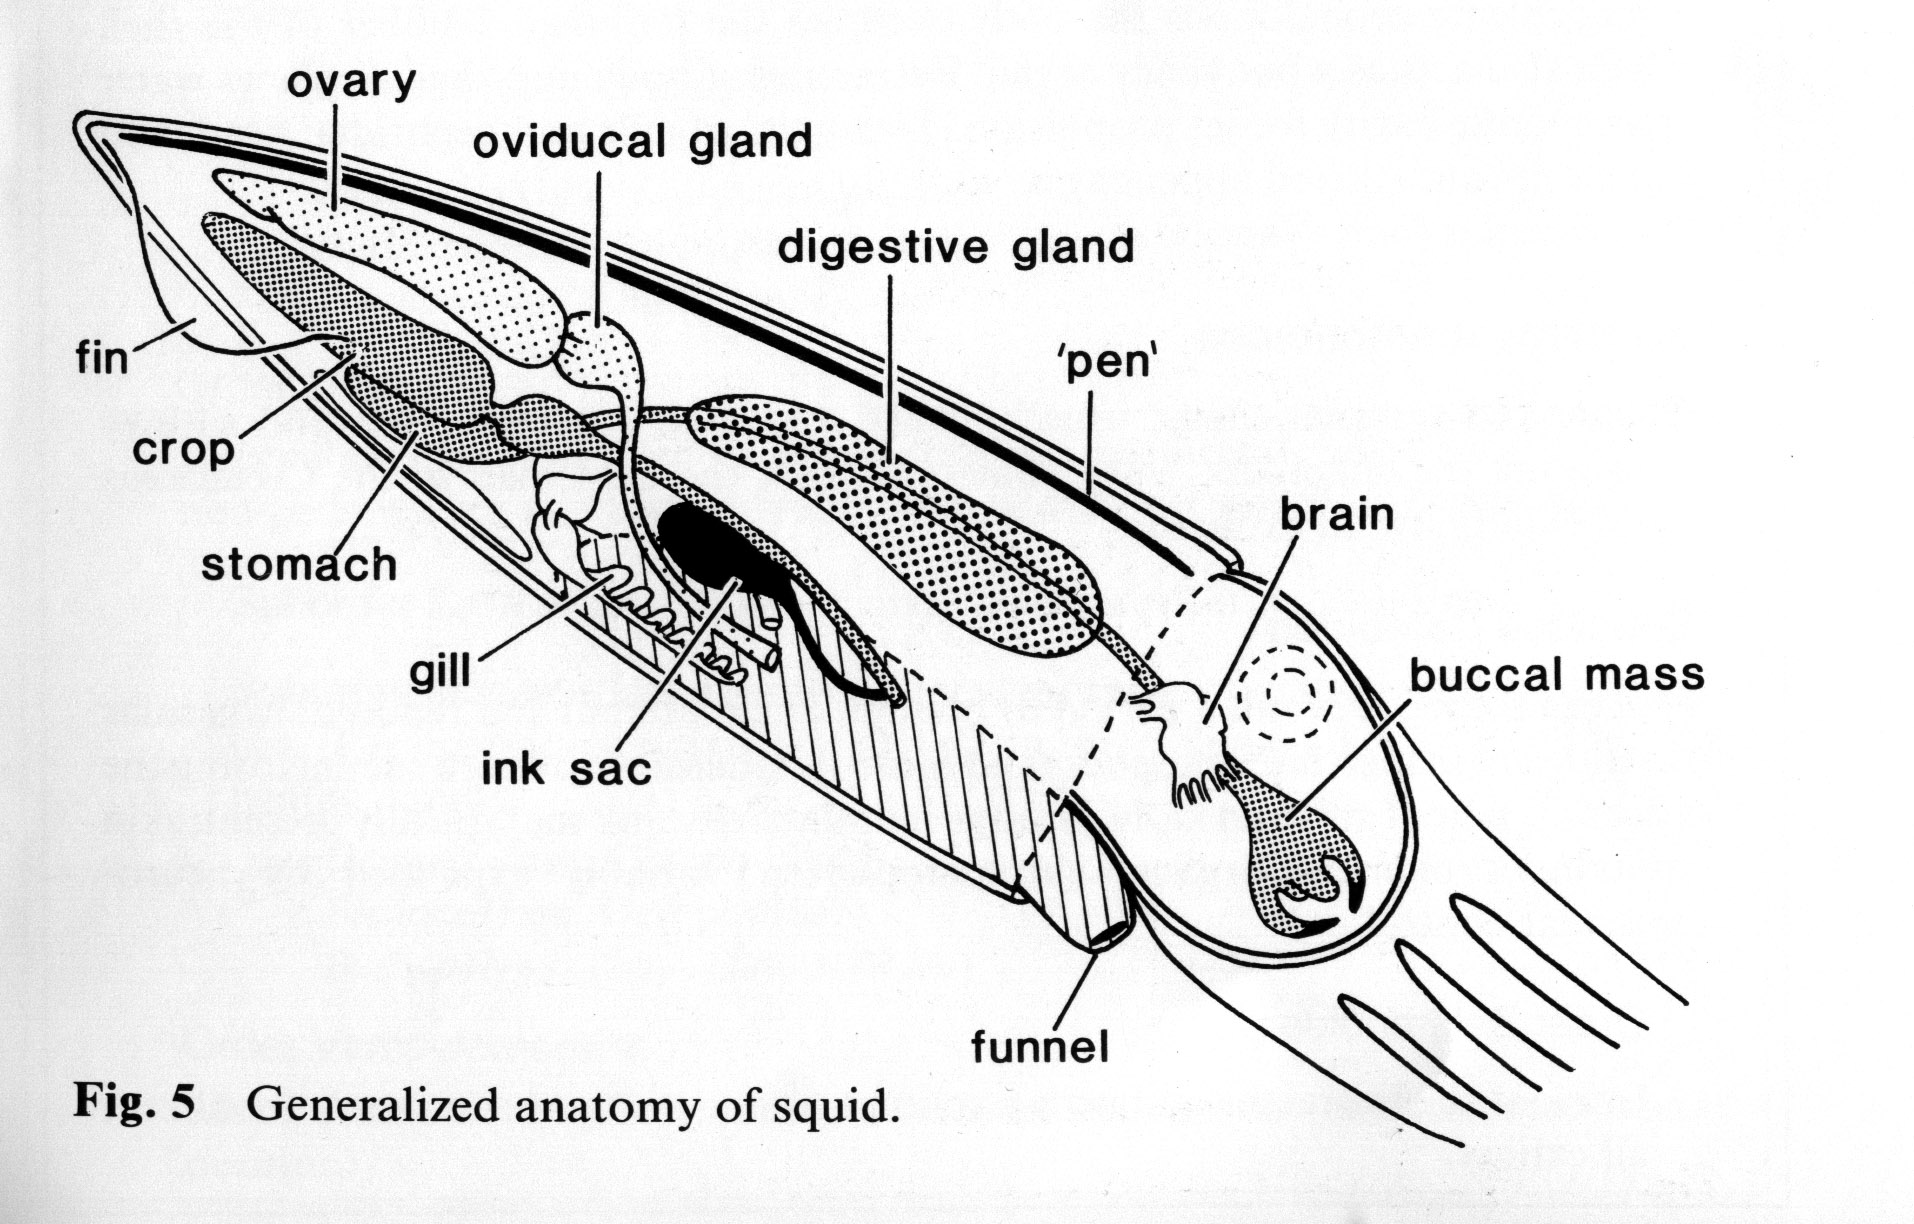 squid internal anatomy diagram 1996 dodge neon radio wiring folter mit sojasoße seite 20 allmystery